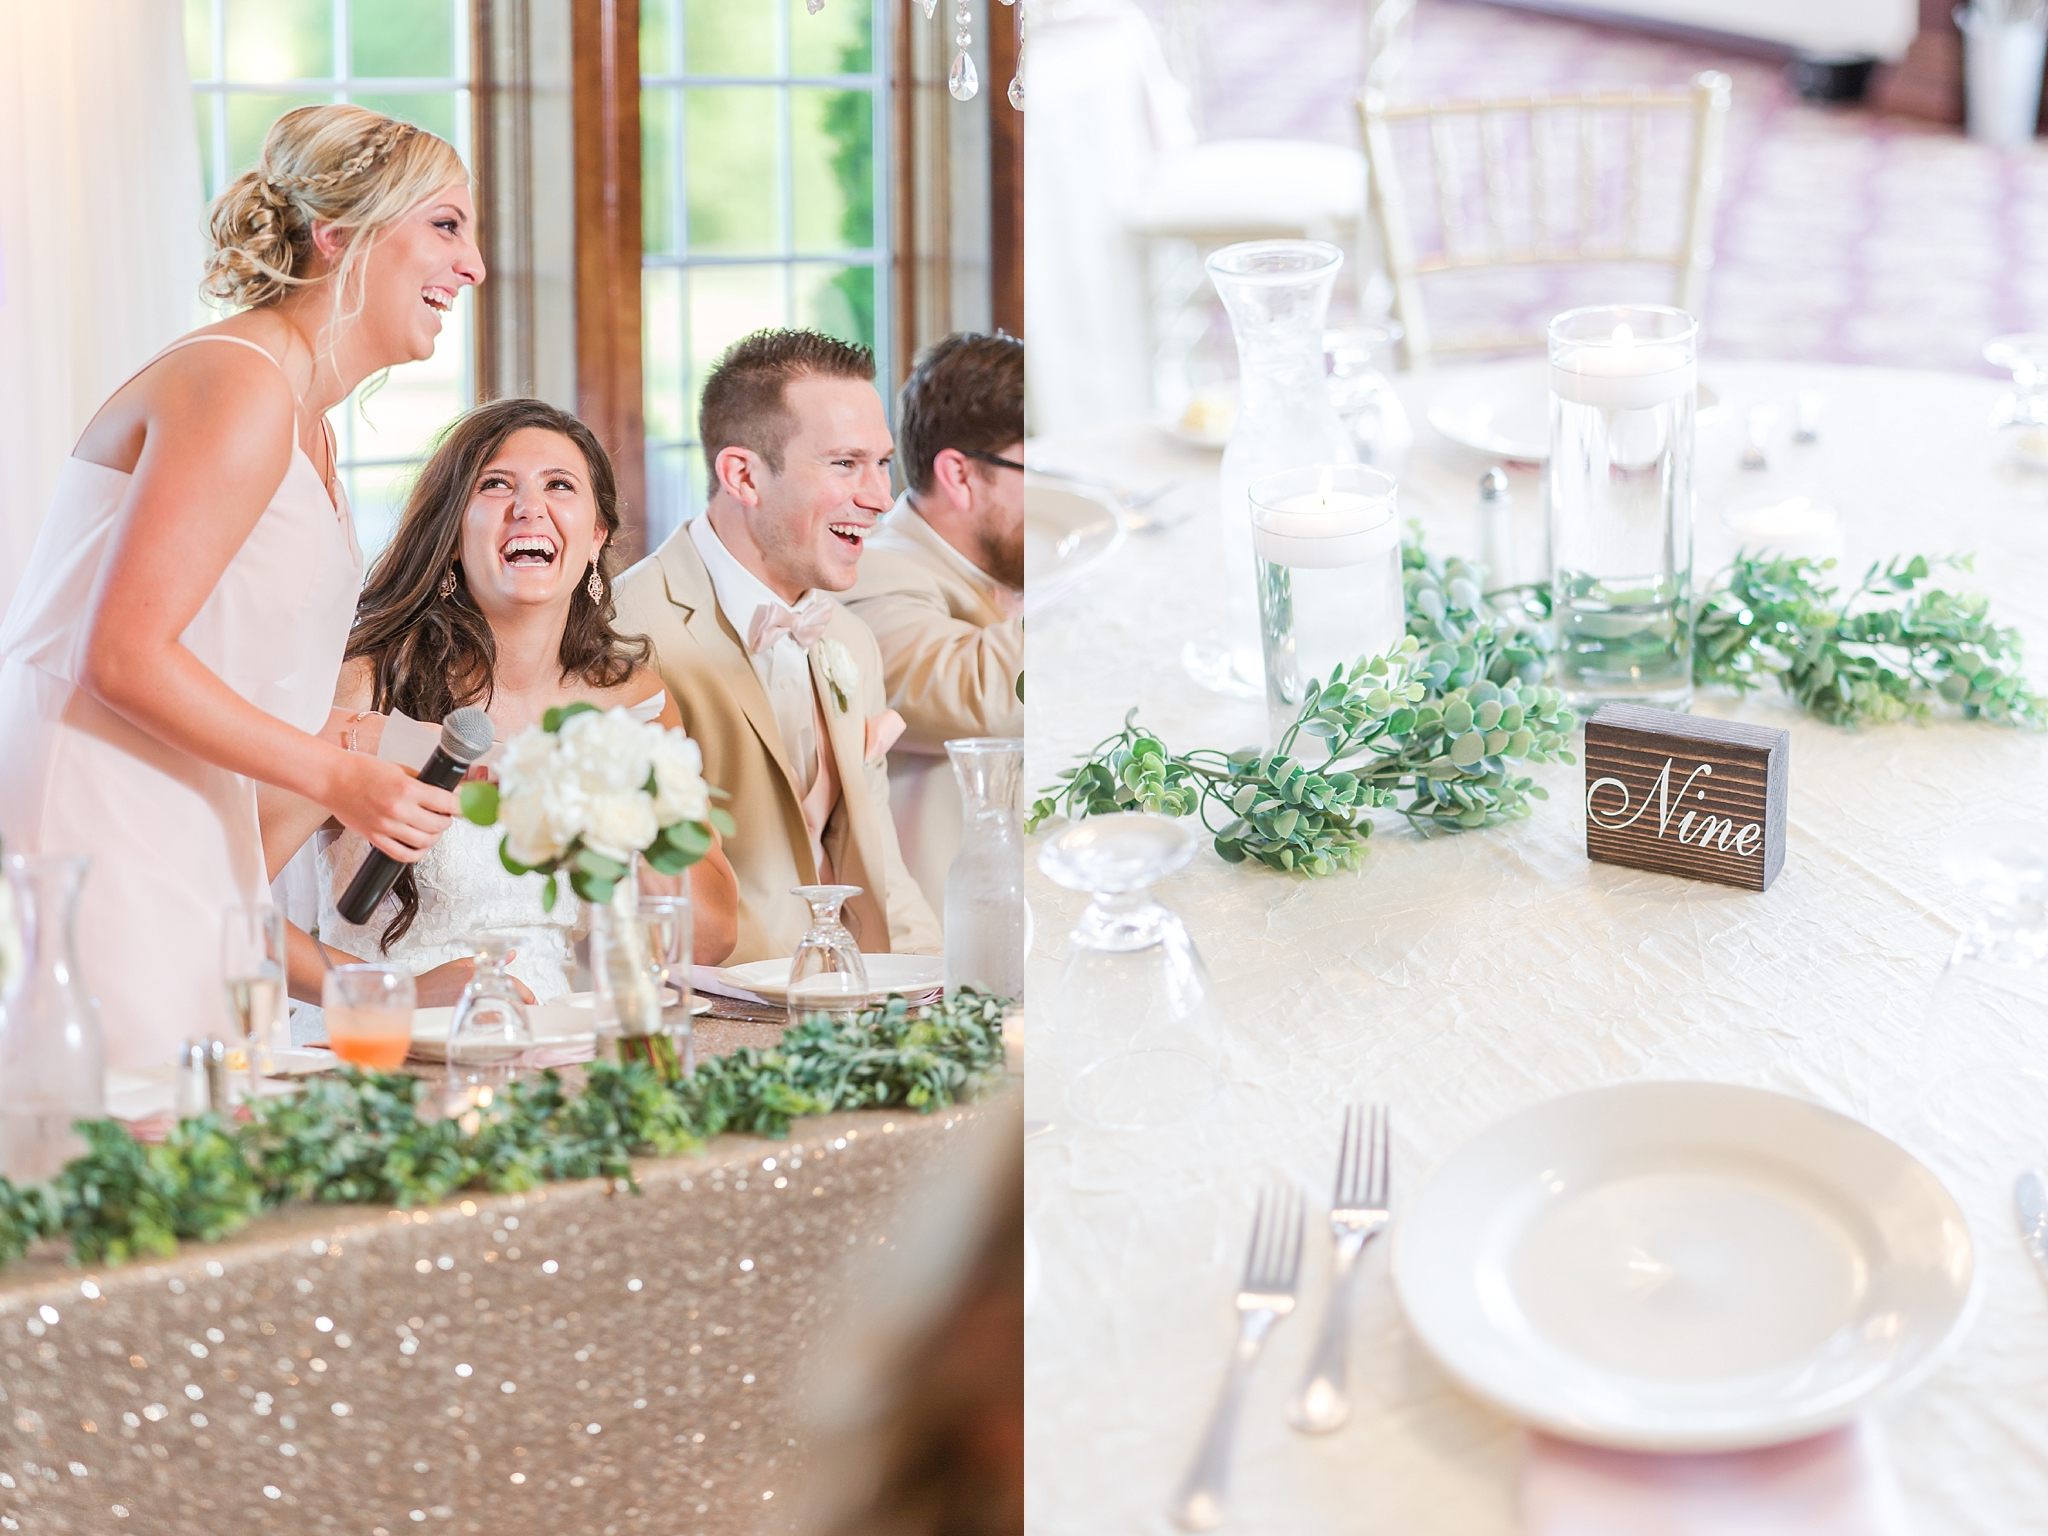 candid-timeless-wedding-photos-at-the-captains-club-in-grand-blanc-michigan-by-courtney-carolyn-photography_0095.jpg